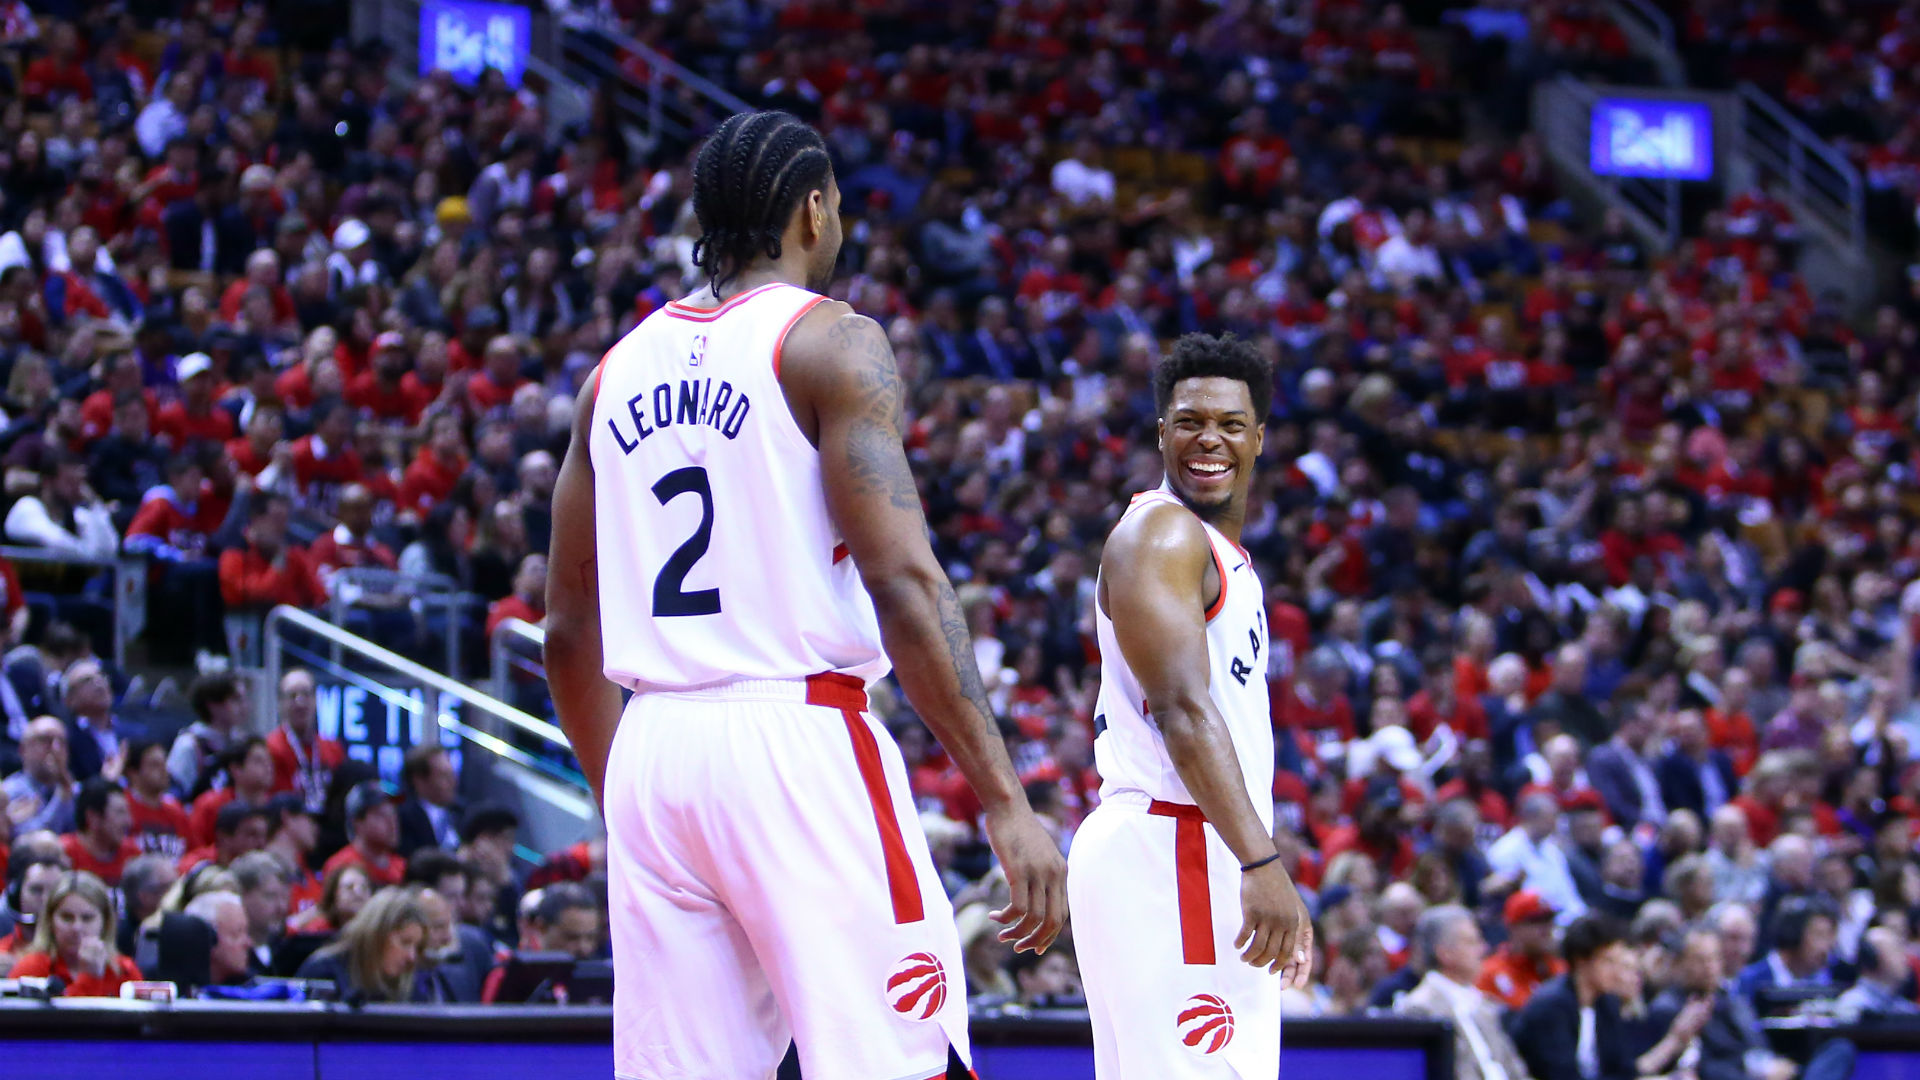 Lowry hails Leonard display as Raptors level series